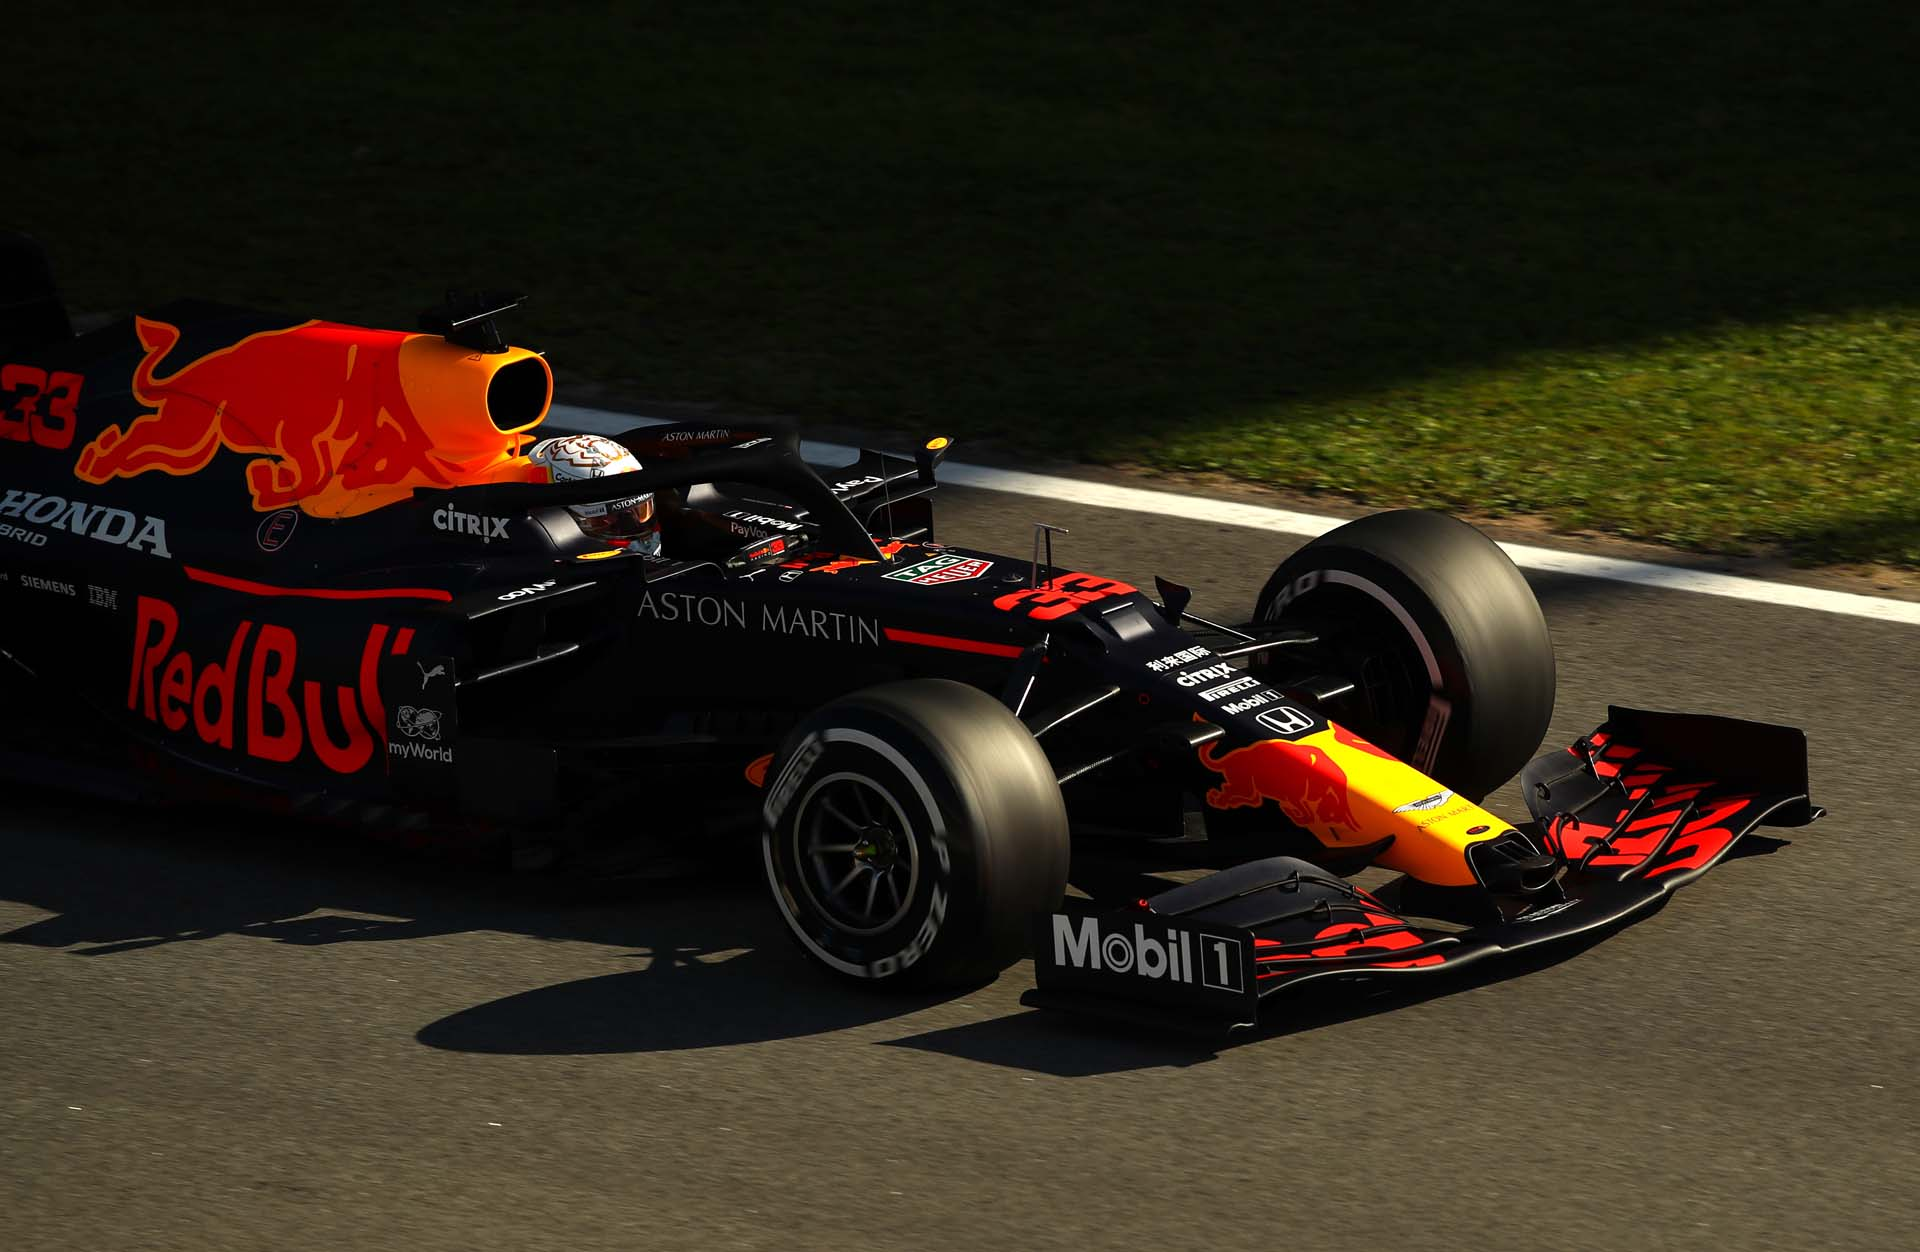 F1 Winter Testing in Barcelona - Day One